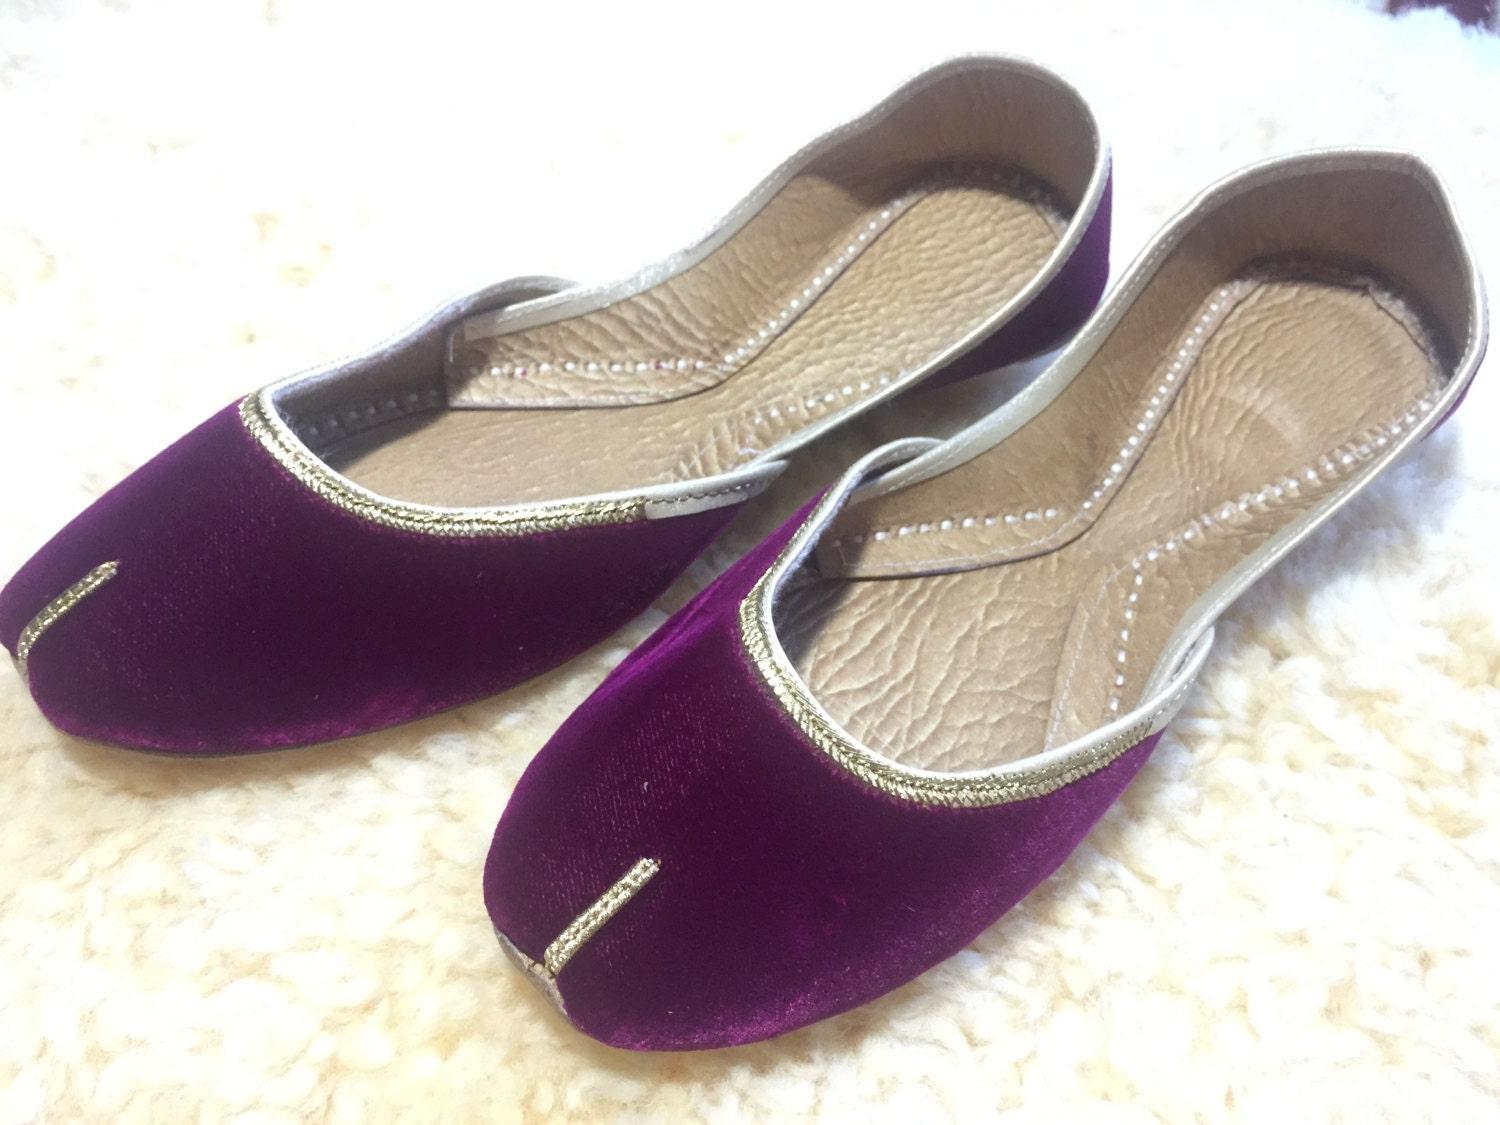 Awesome Clothes Shoes Amp Accessories Gt Women39s Shoes Gt Flats